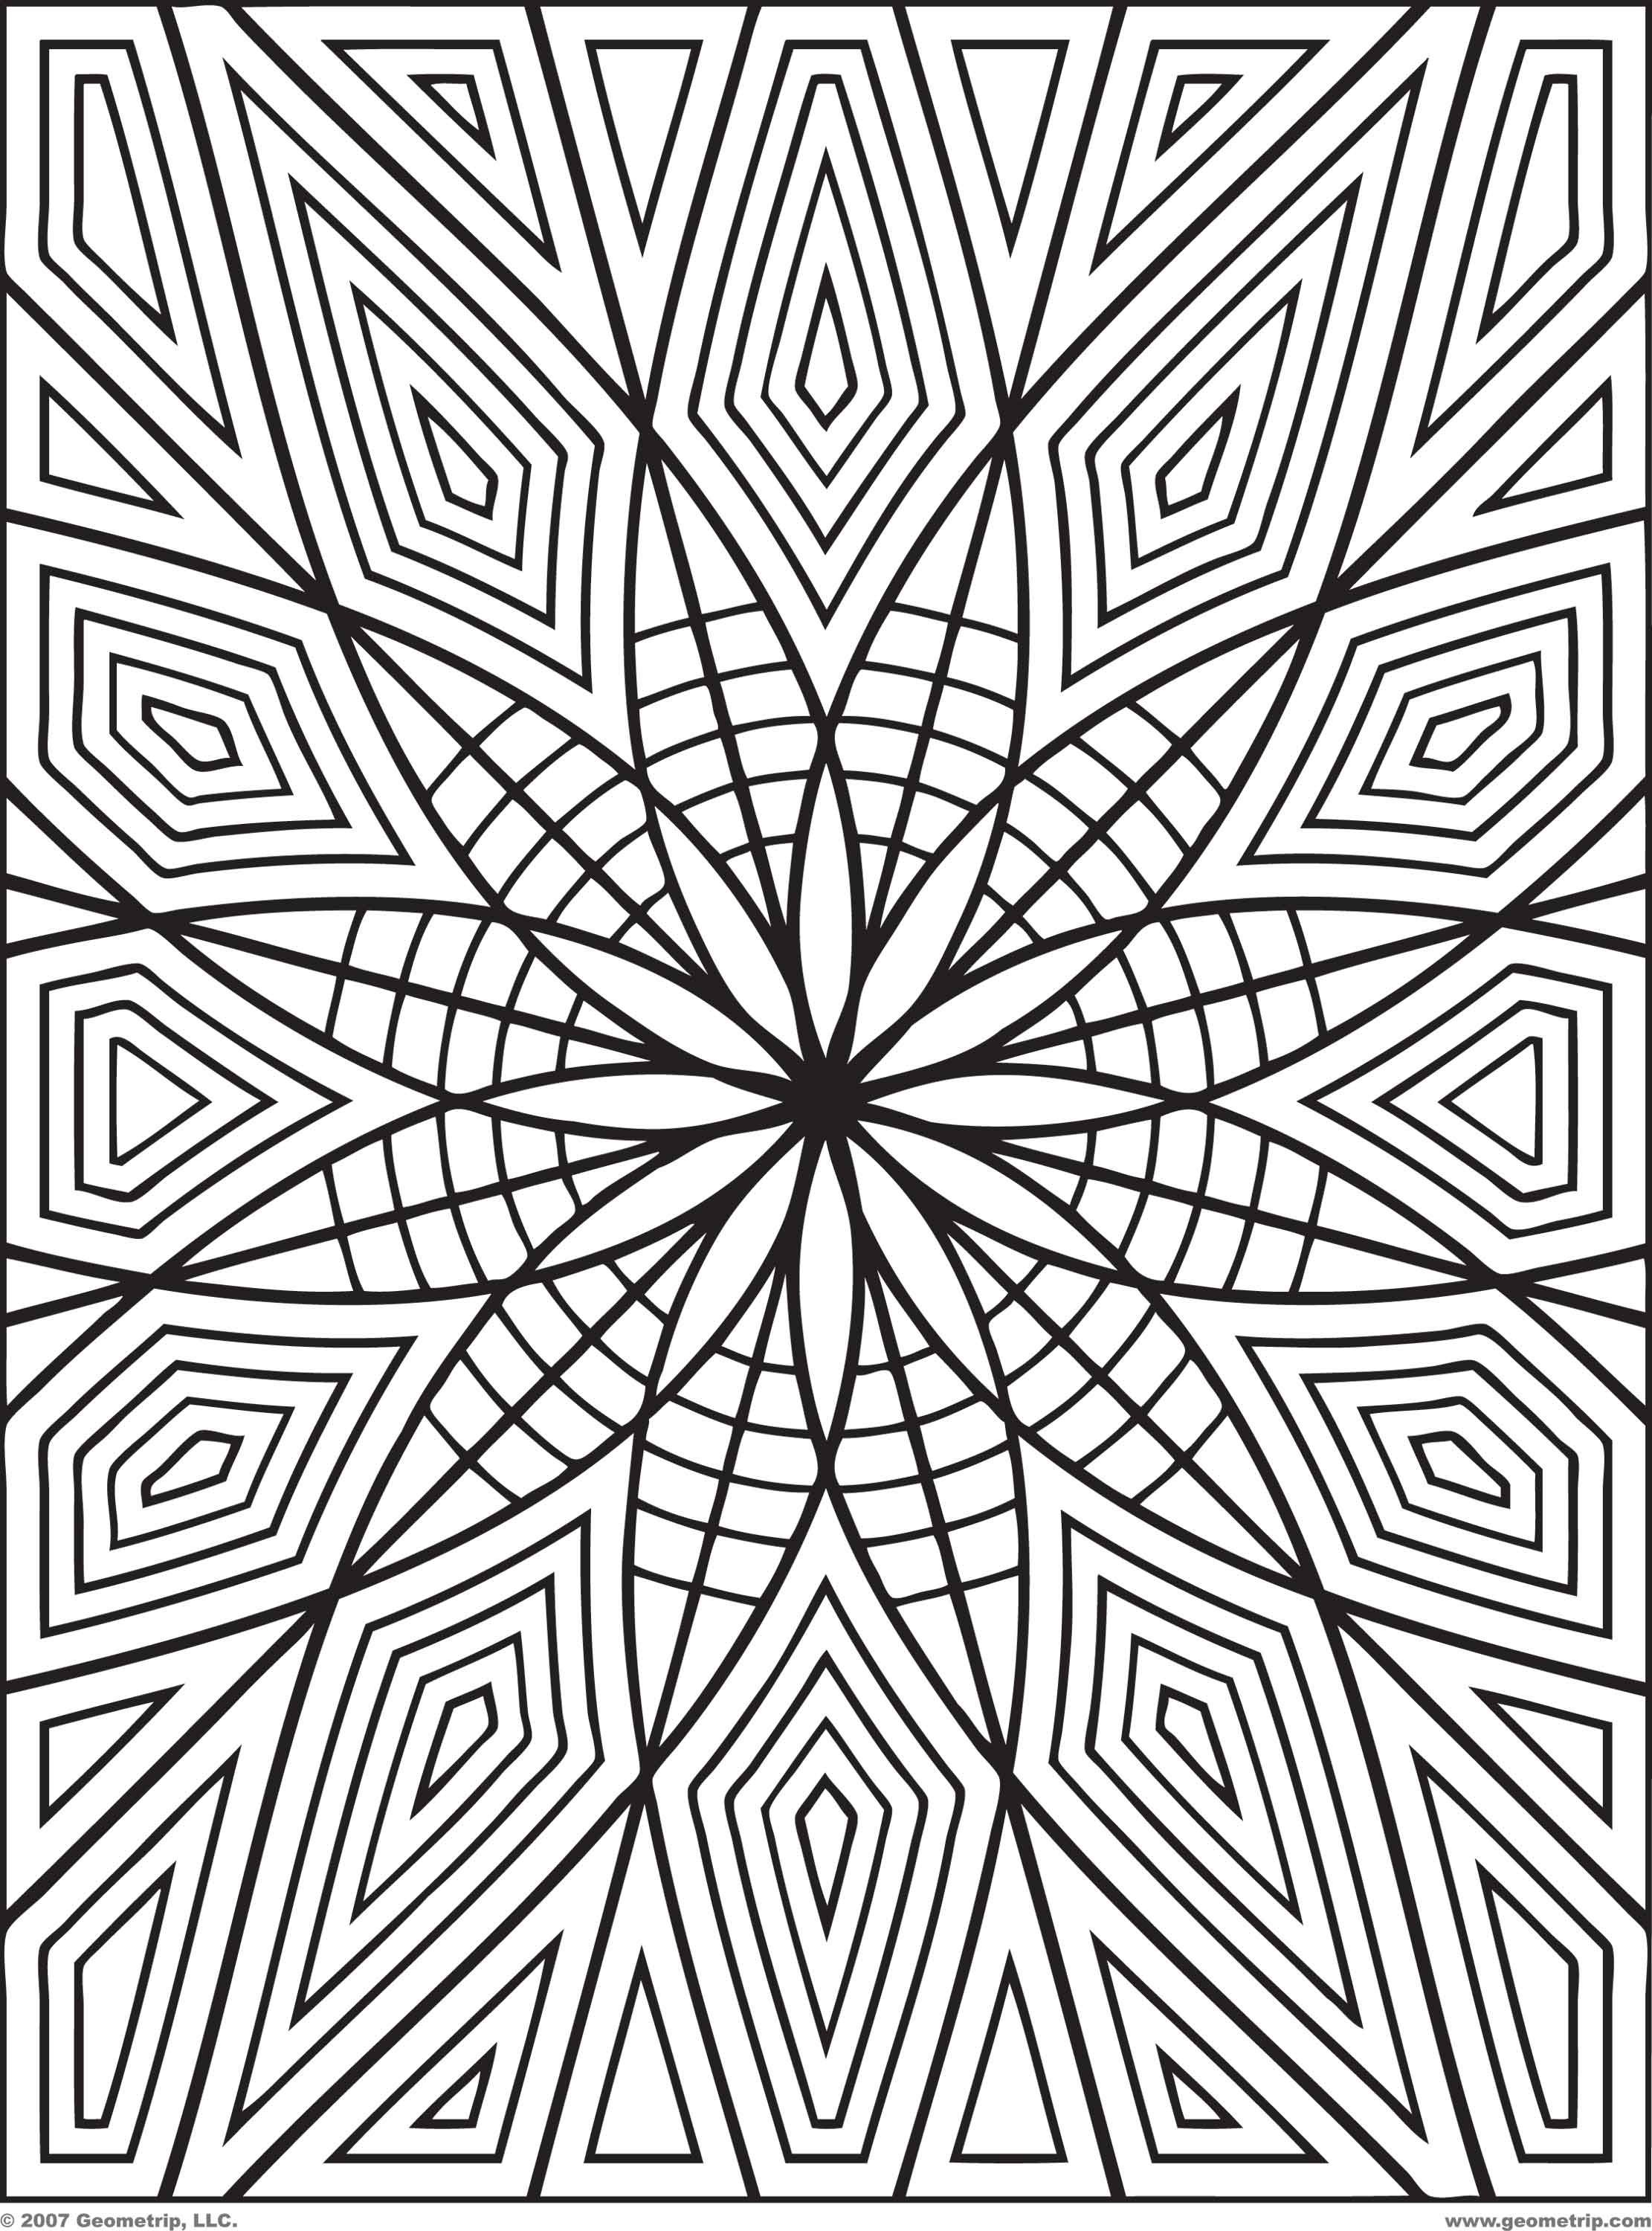 Coloring Pages. trippy coloring pages ~ Worldpaint | kickback ...